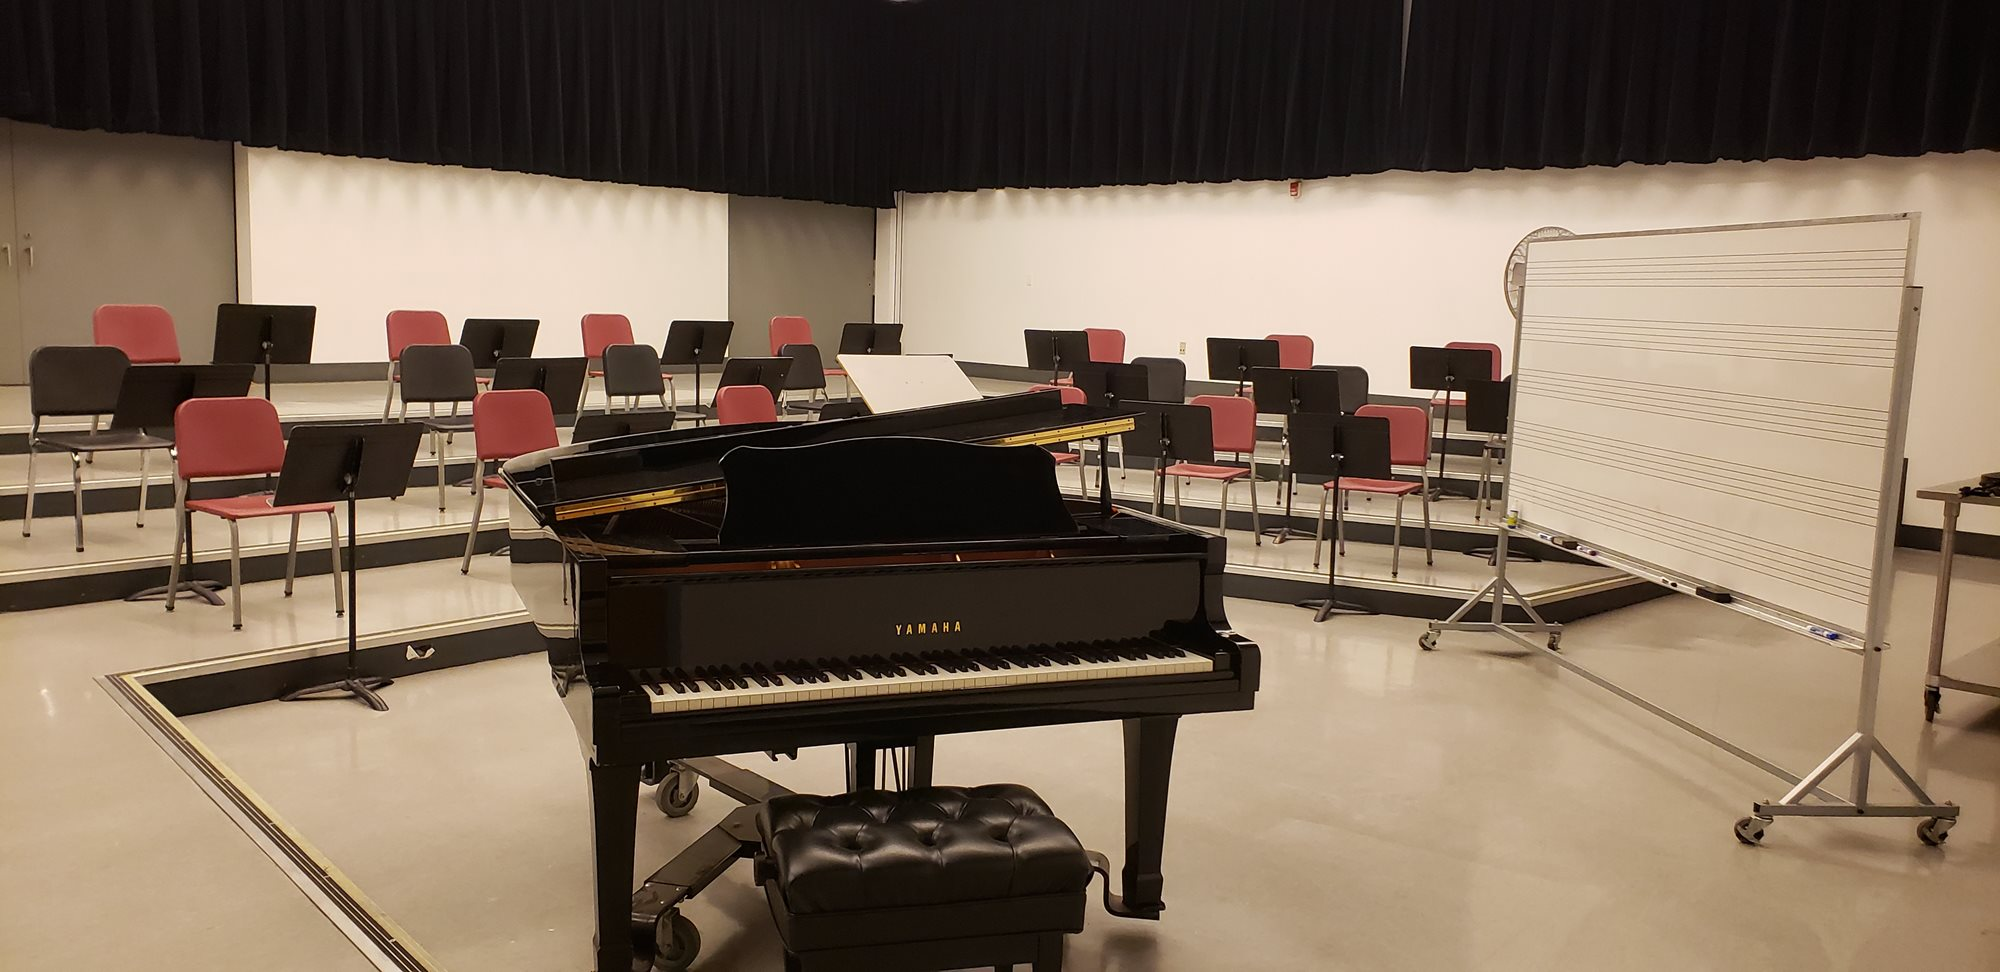 An open piano sits in front of several rising rows of chairs and music stands.